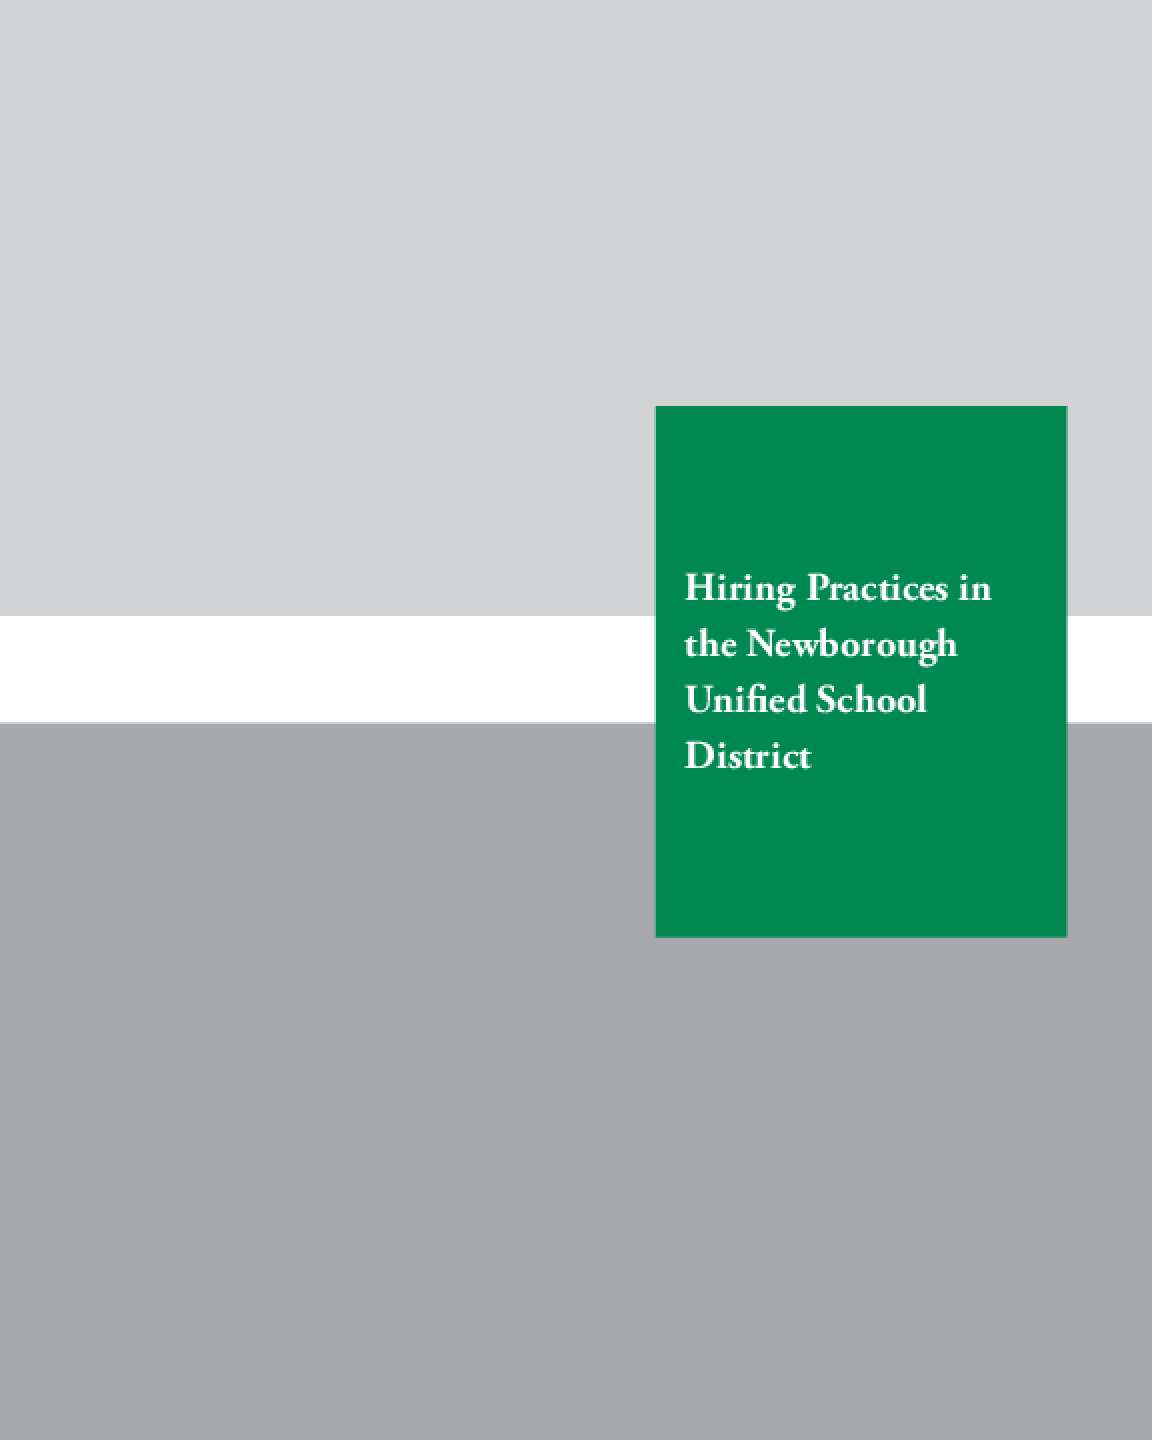 Hiring Practices in the Newborough Unified School District